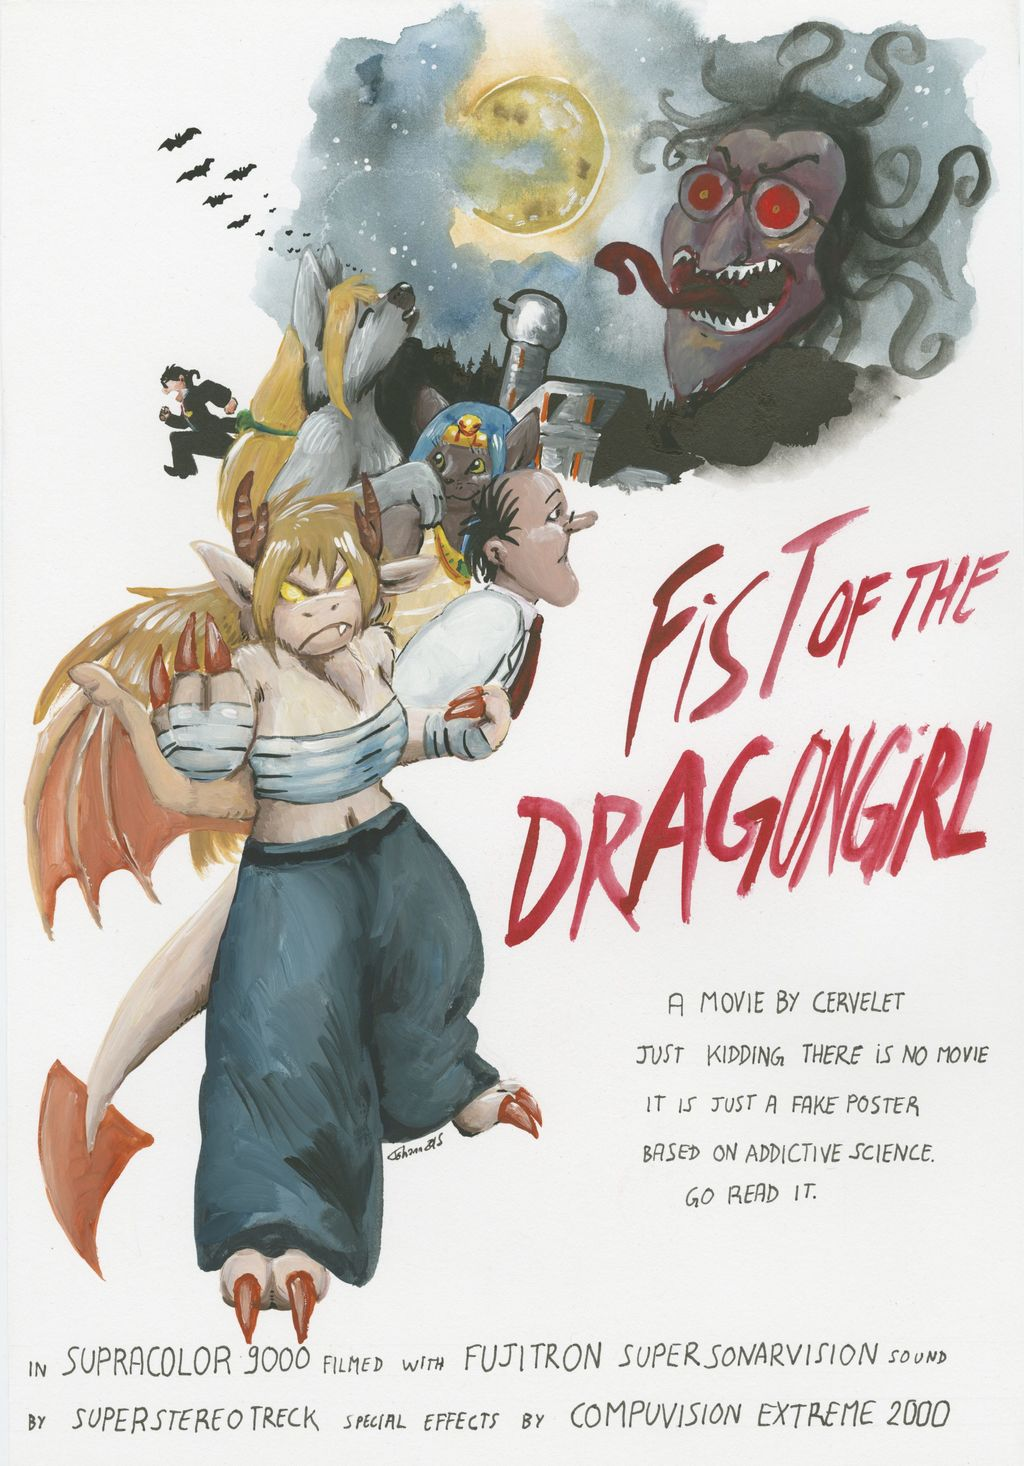 Fist of the Dragongirl